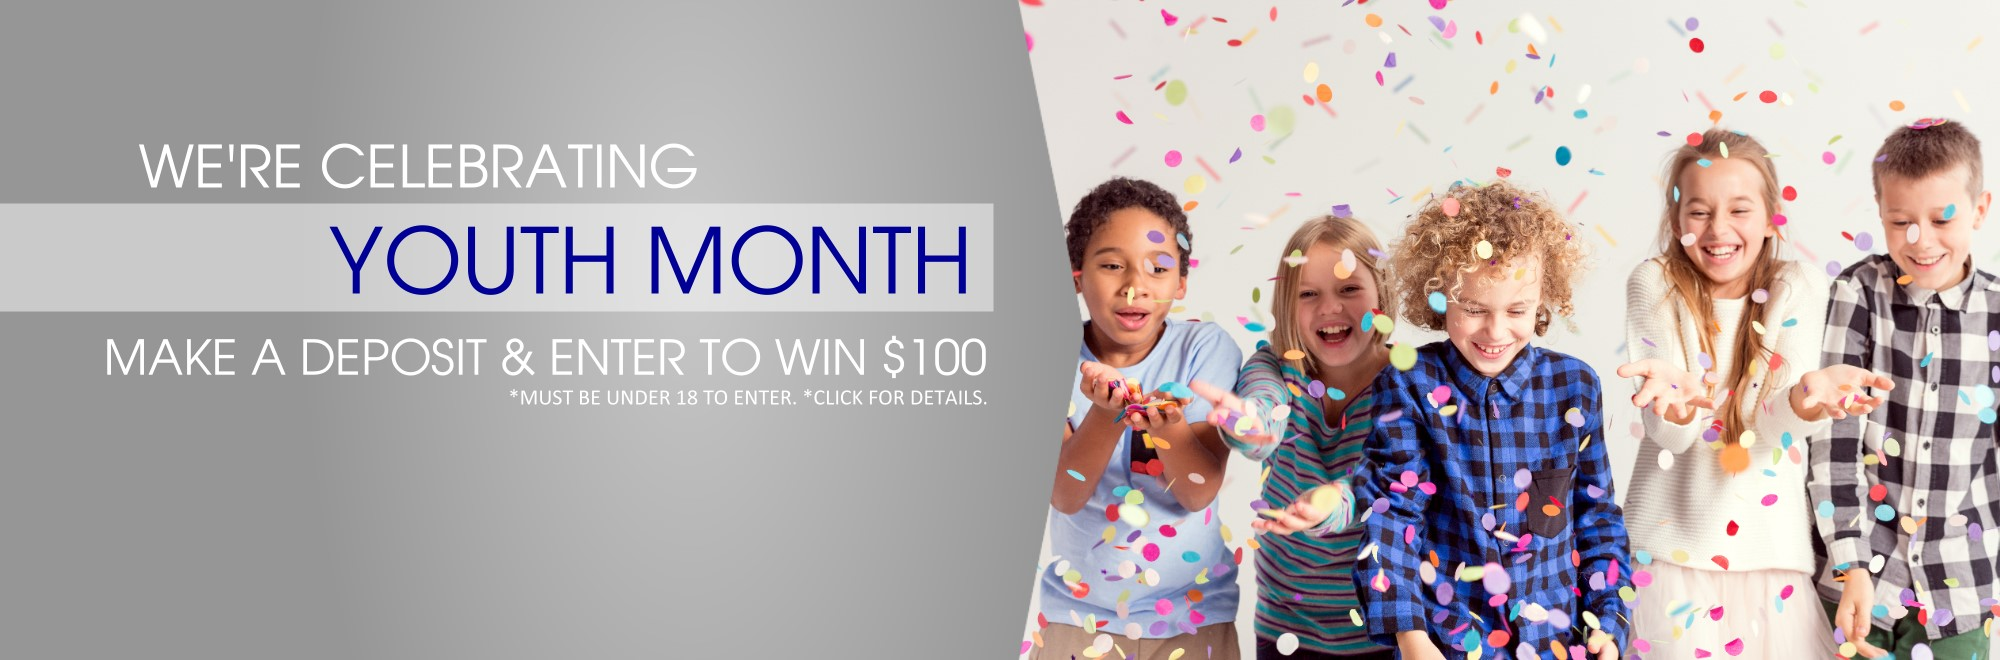 We're Celebrating Youth Month! Make a deposit and enter to win $100! Must be 18 to enter, click for details